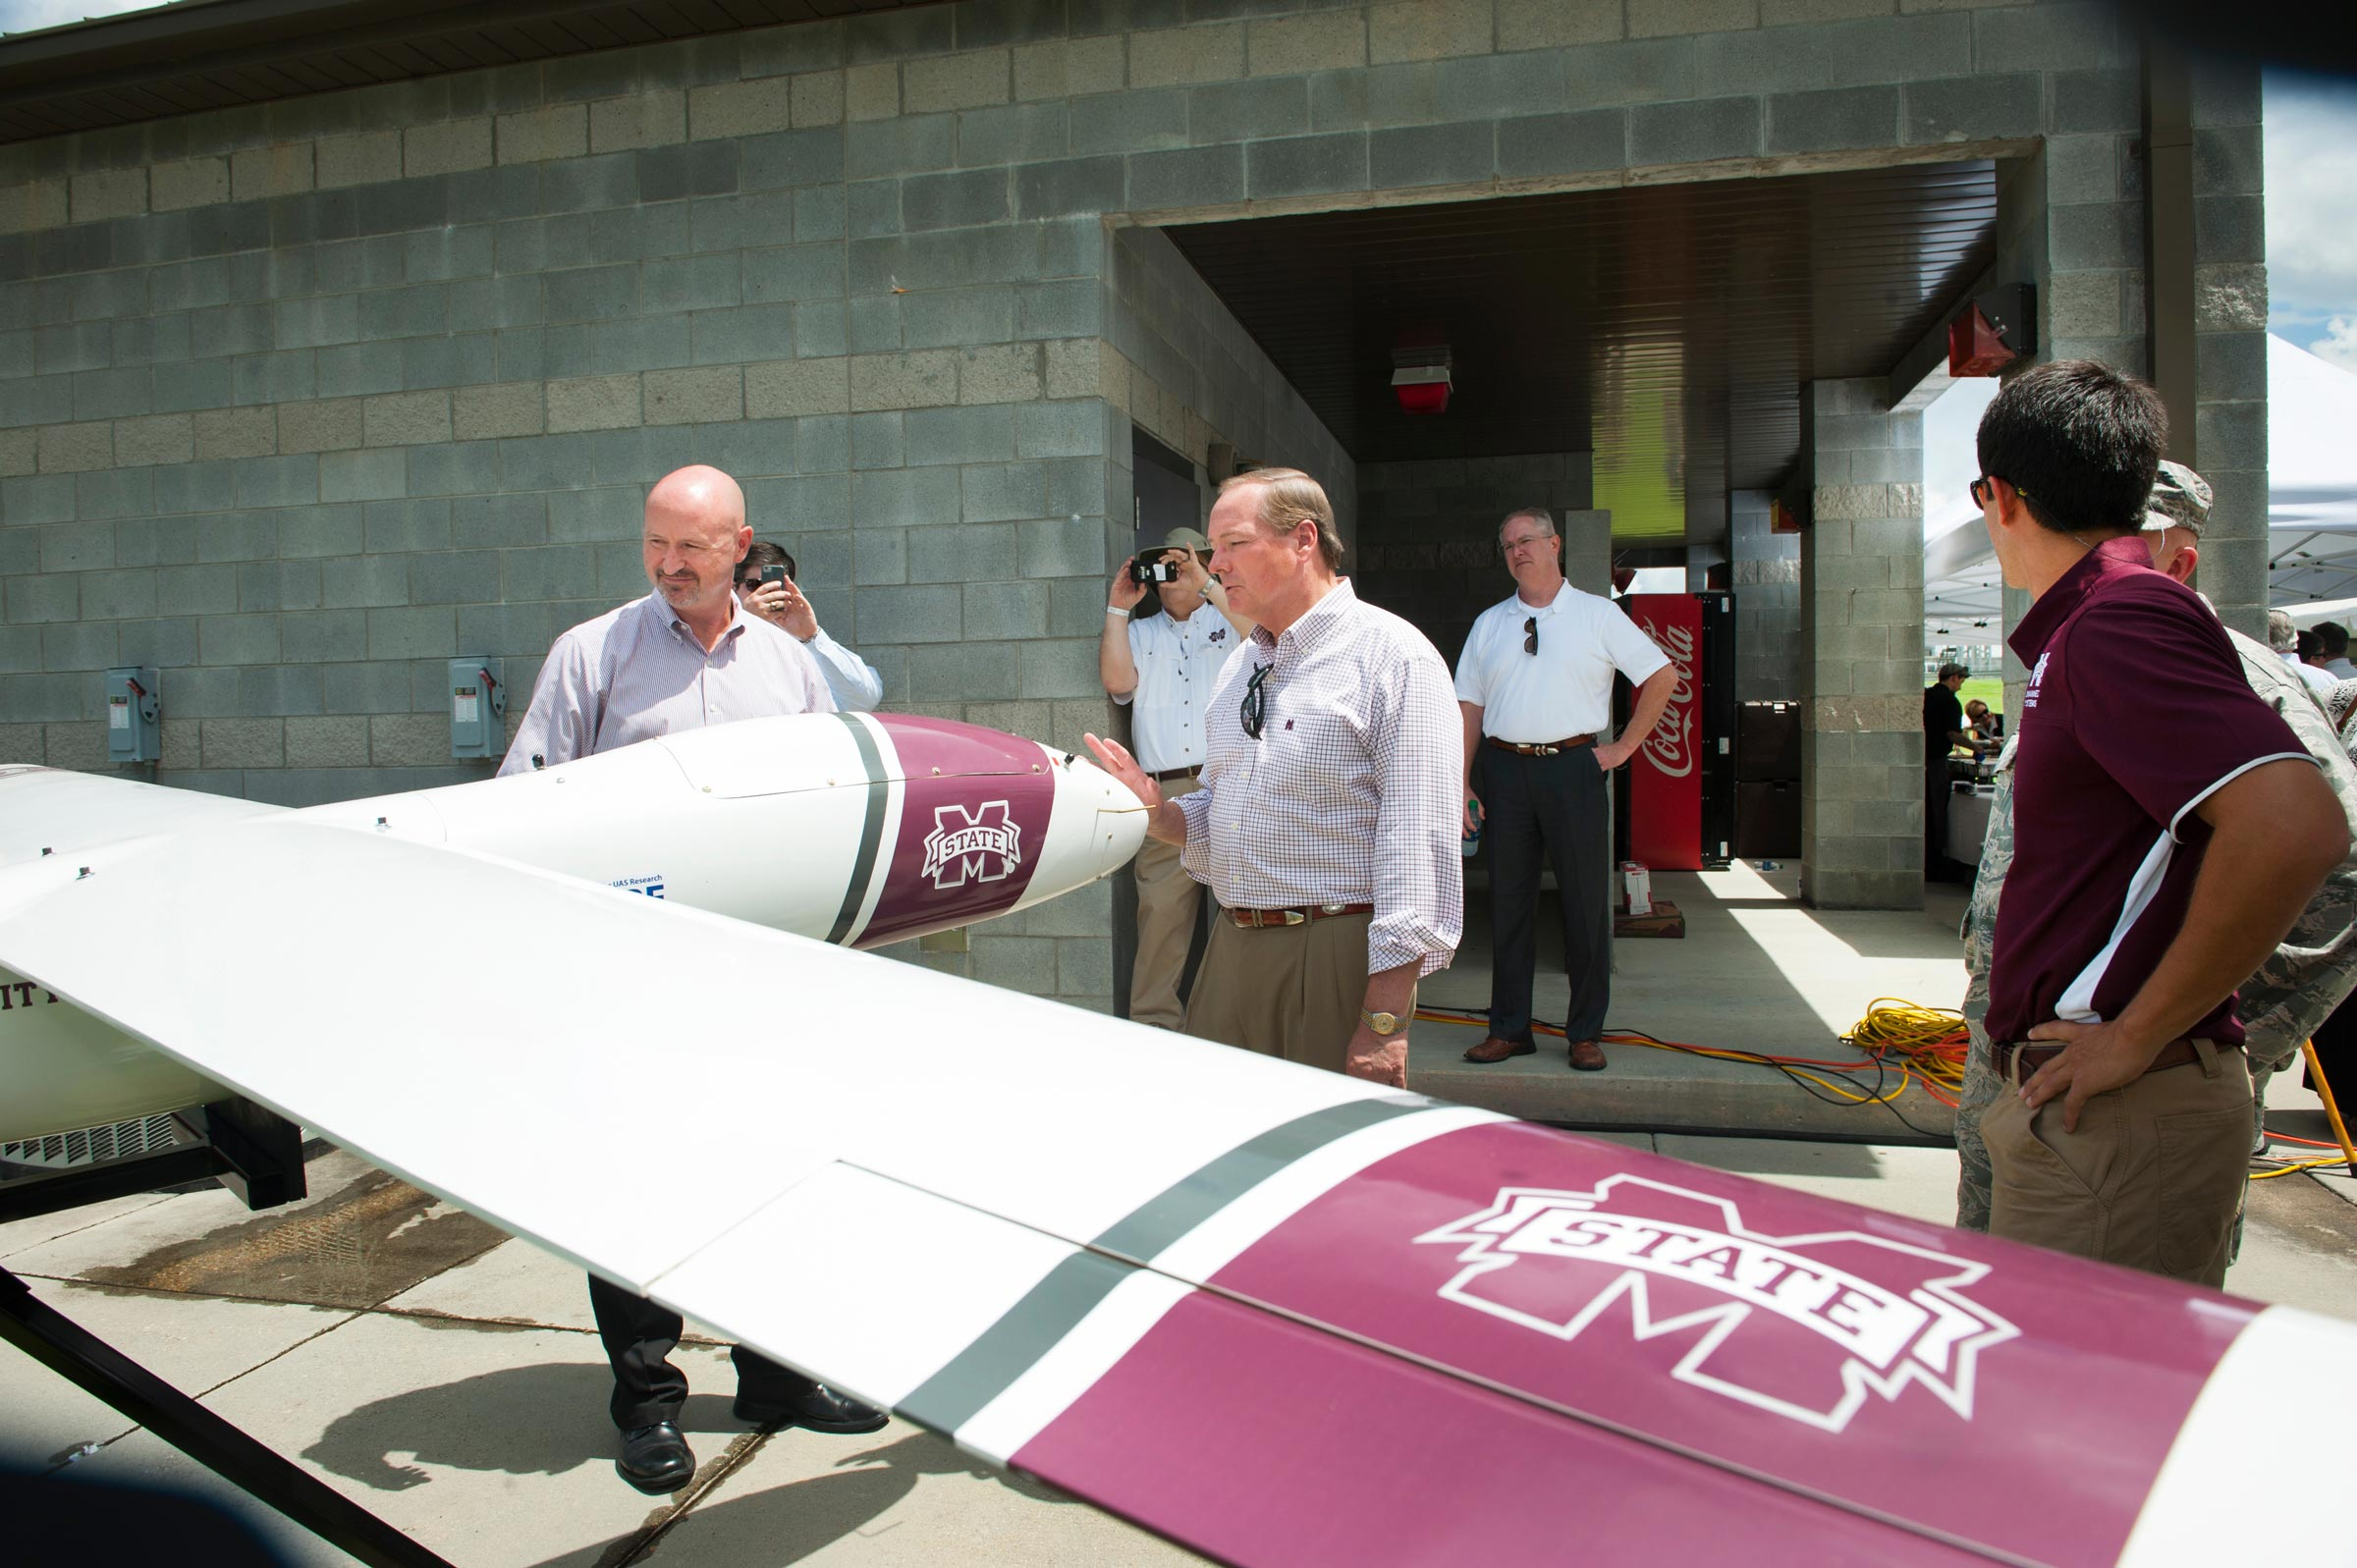 Dallas Brooks and Mark Keenum next to unmanned plane